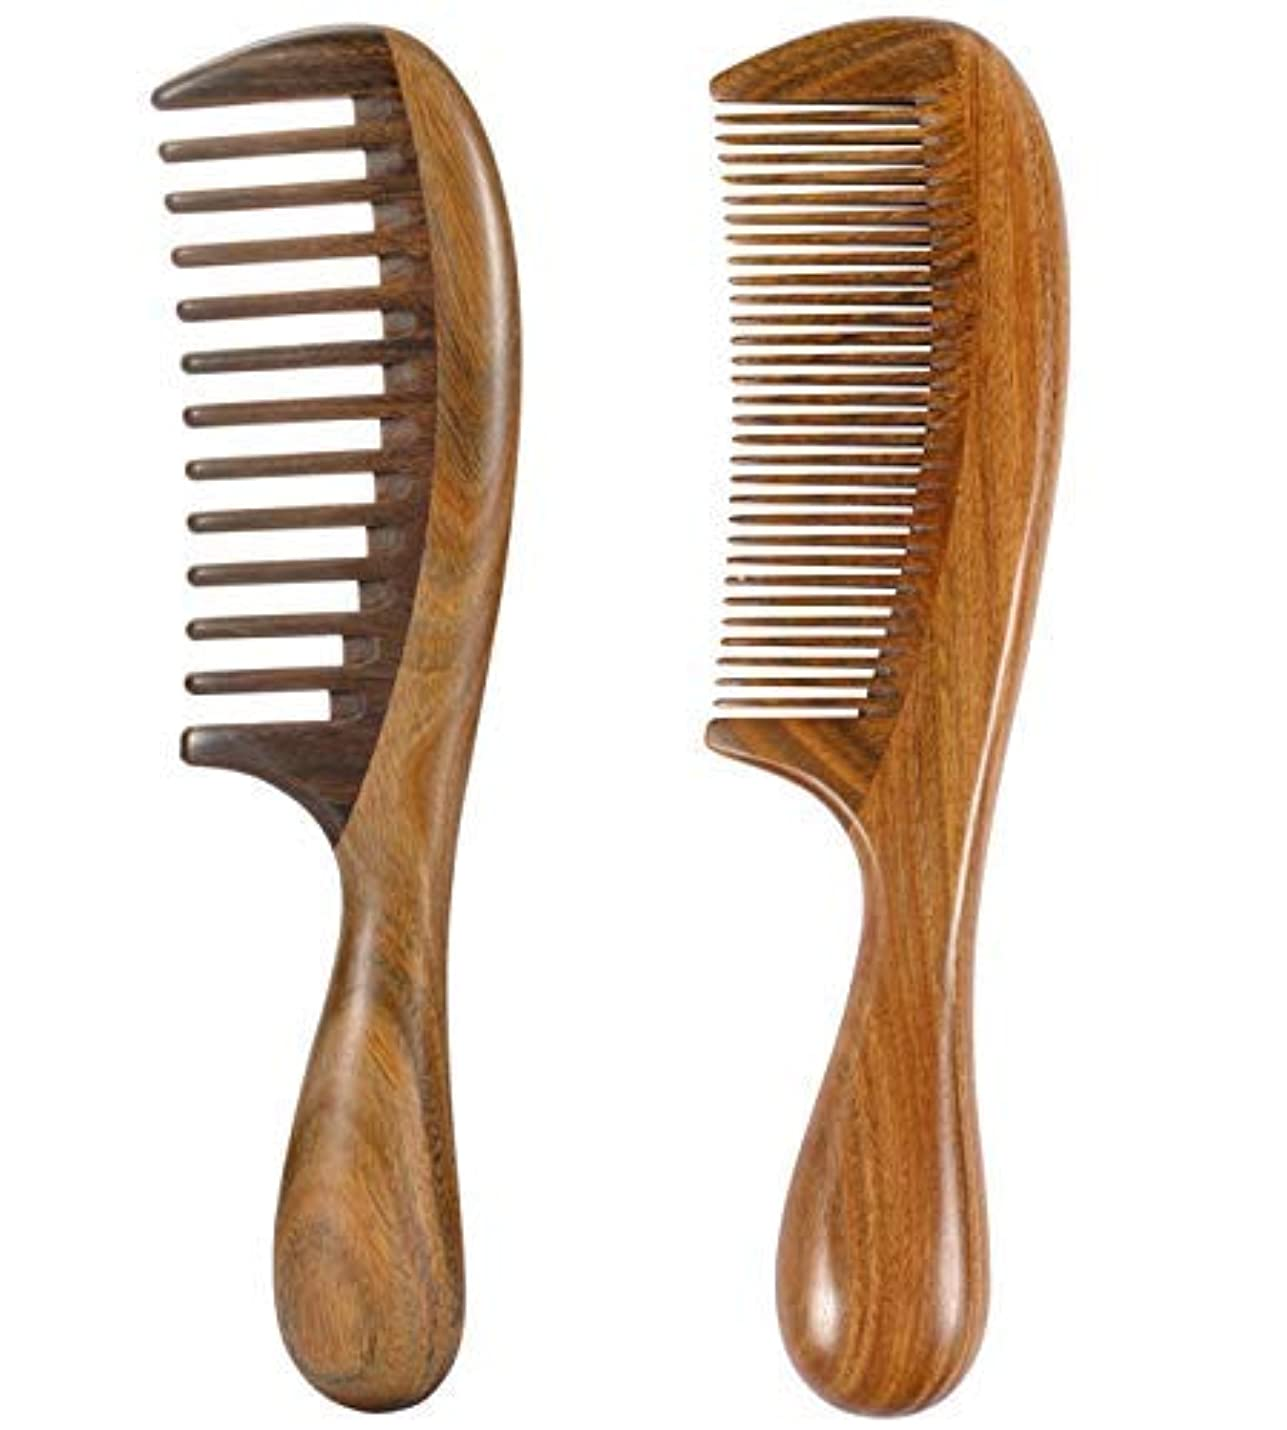 iPang 2pcs Wooden Hair Comb Wide Tooth Comb and Find Tooth Comb Detangling Sandalwood Comb [並行輸入品]